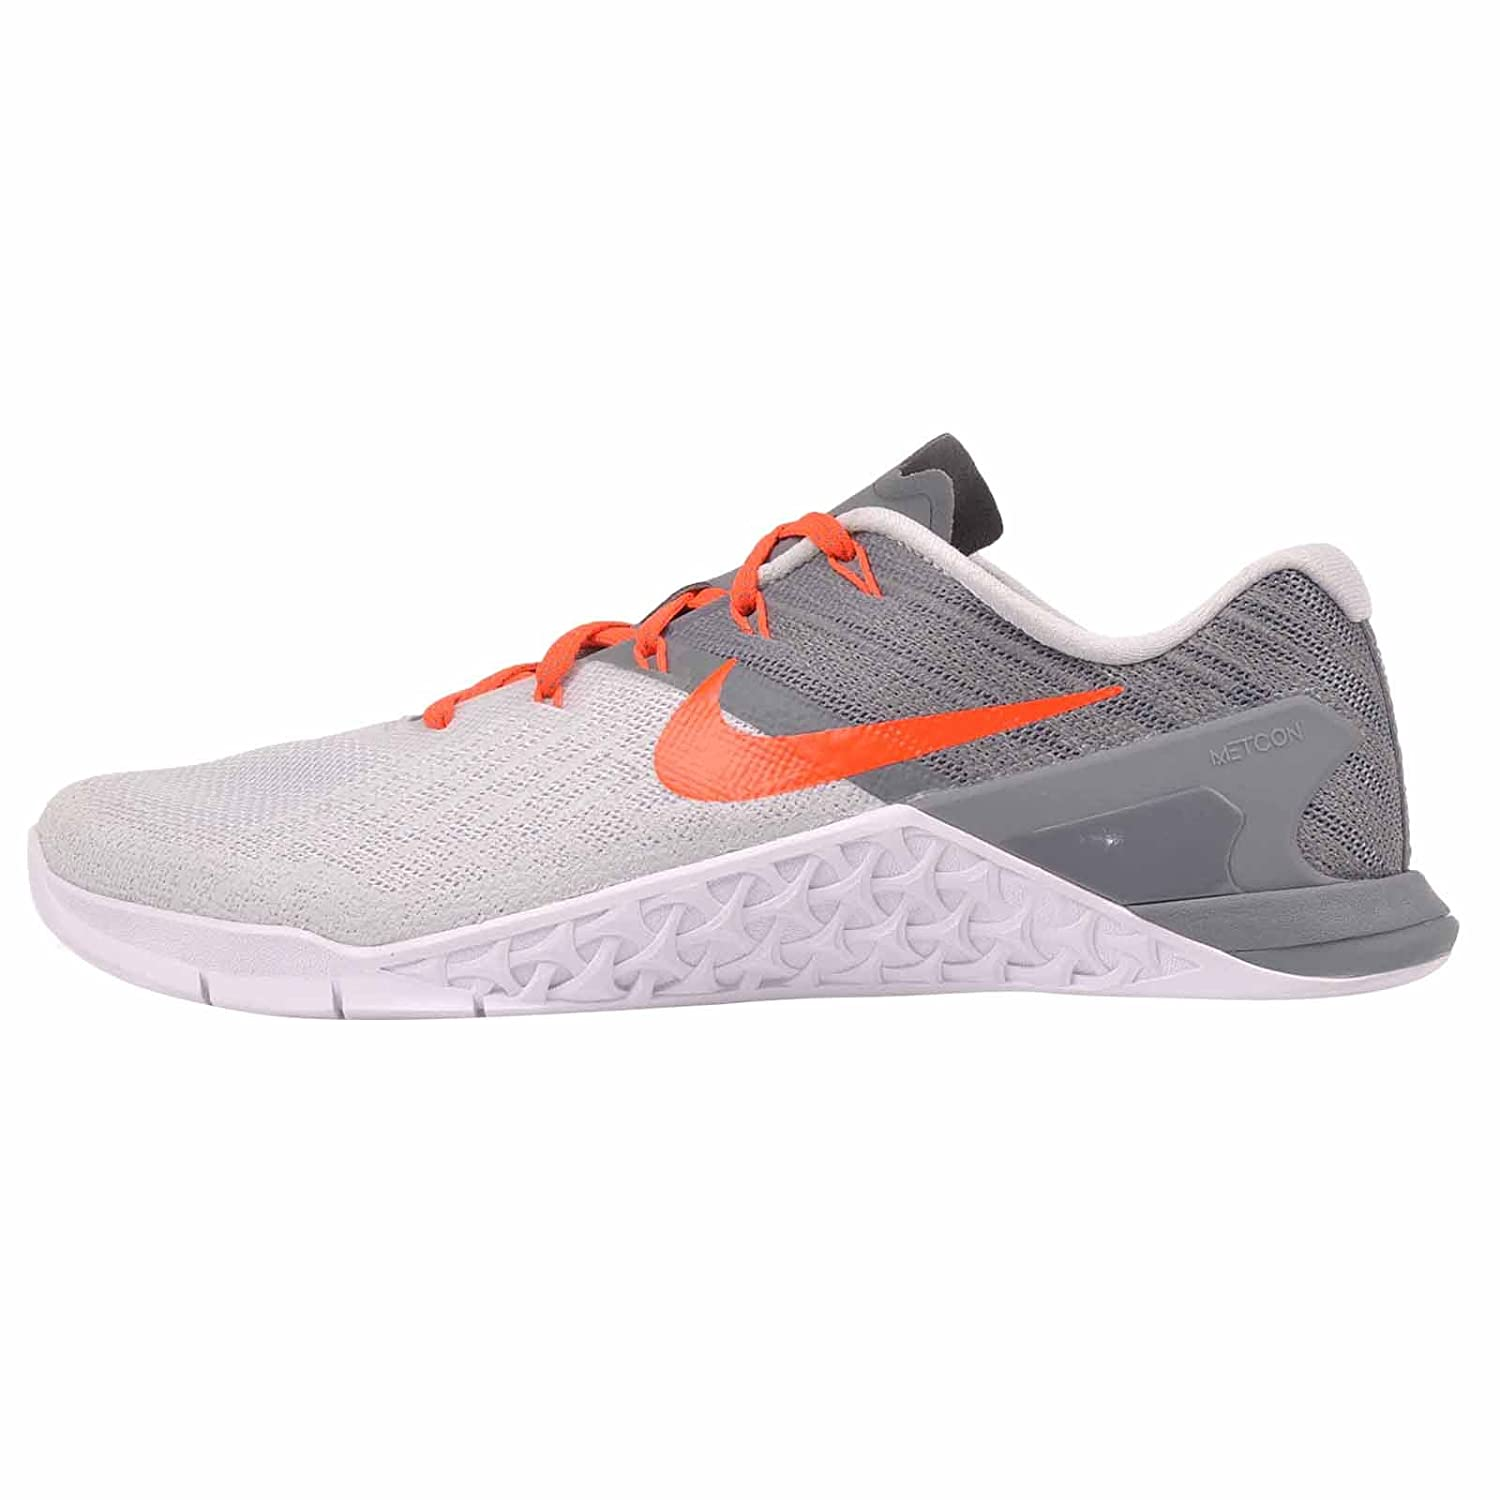 Nike Womens Metcon 3 Training Shoes B01N2VPBTN 8 B(M) US|Pure Platinum / Total Crimson